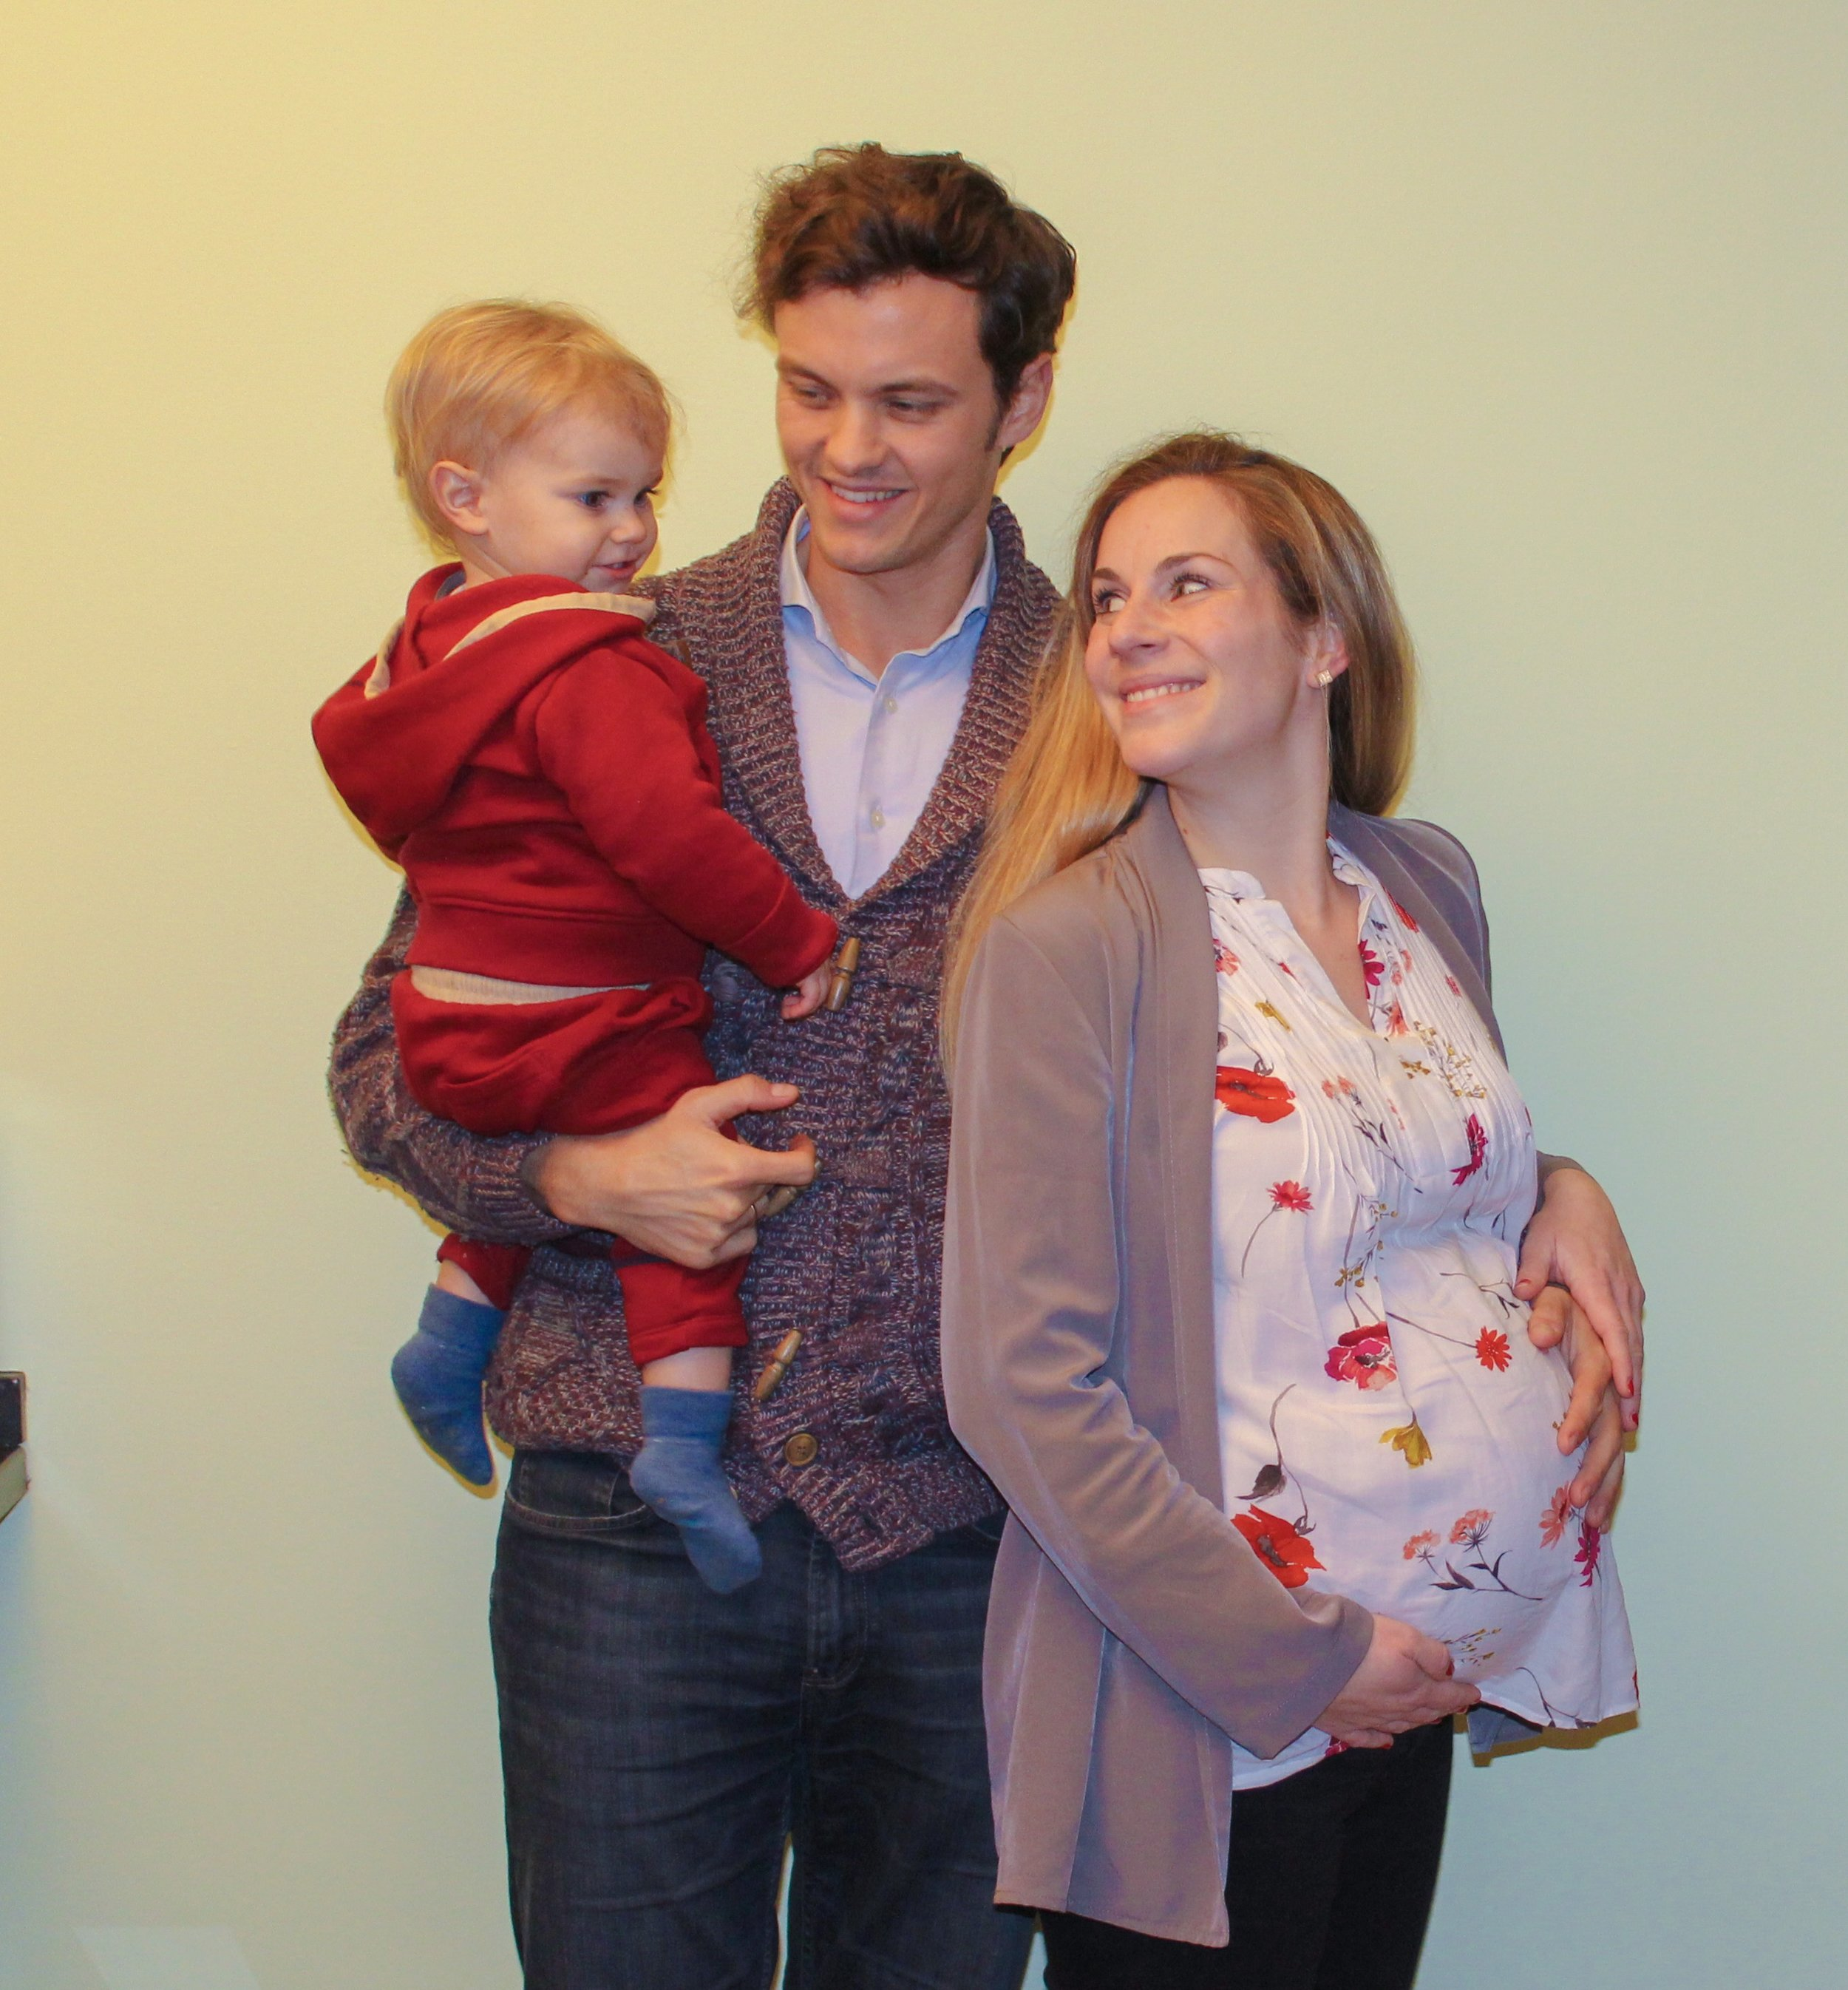 A quick picture of us as a family of three for the last time, before leaving for the hospital.